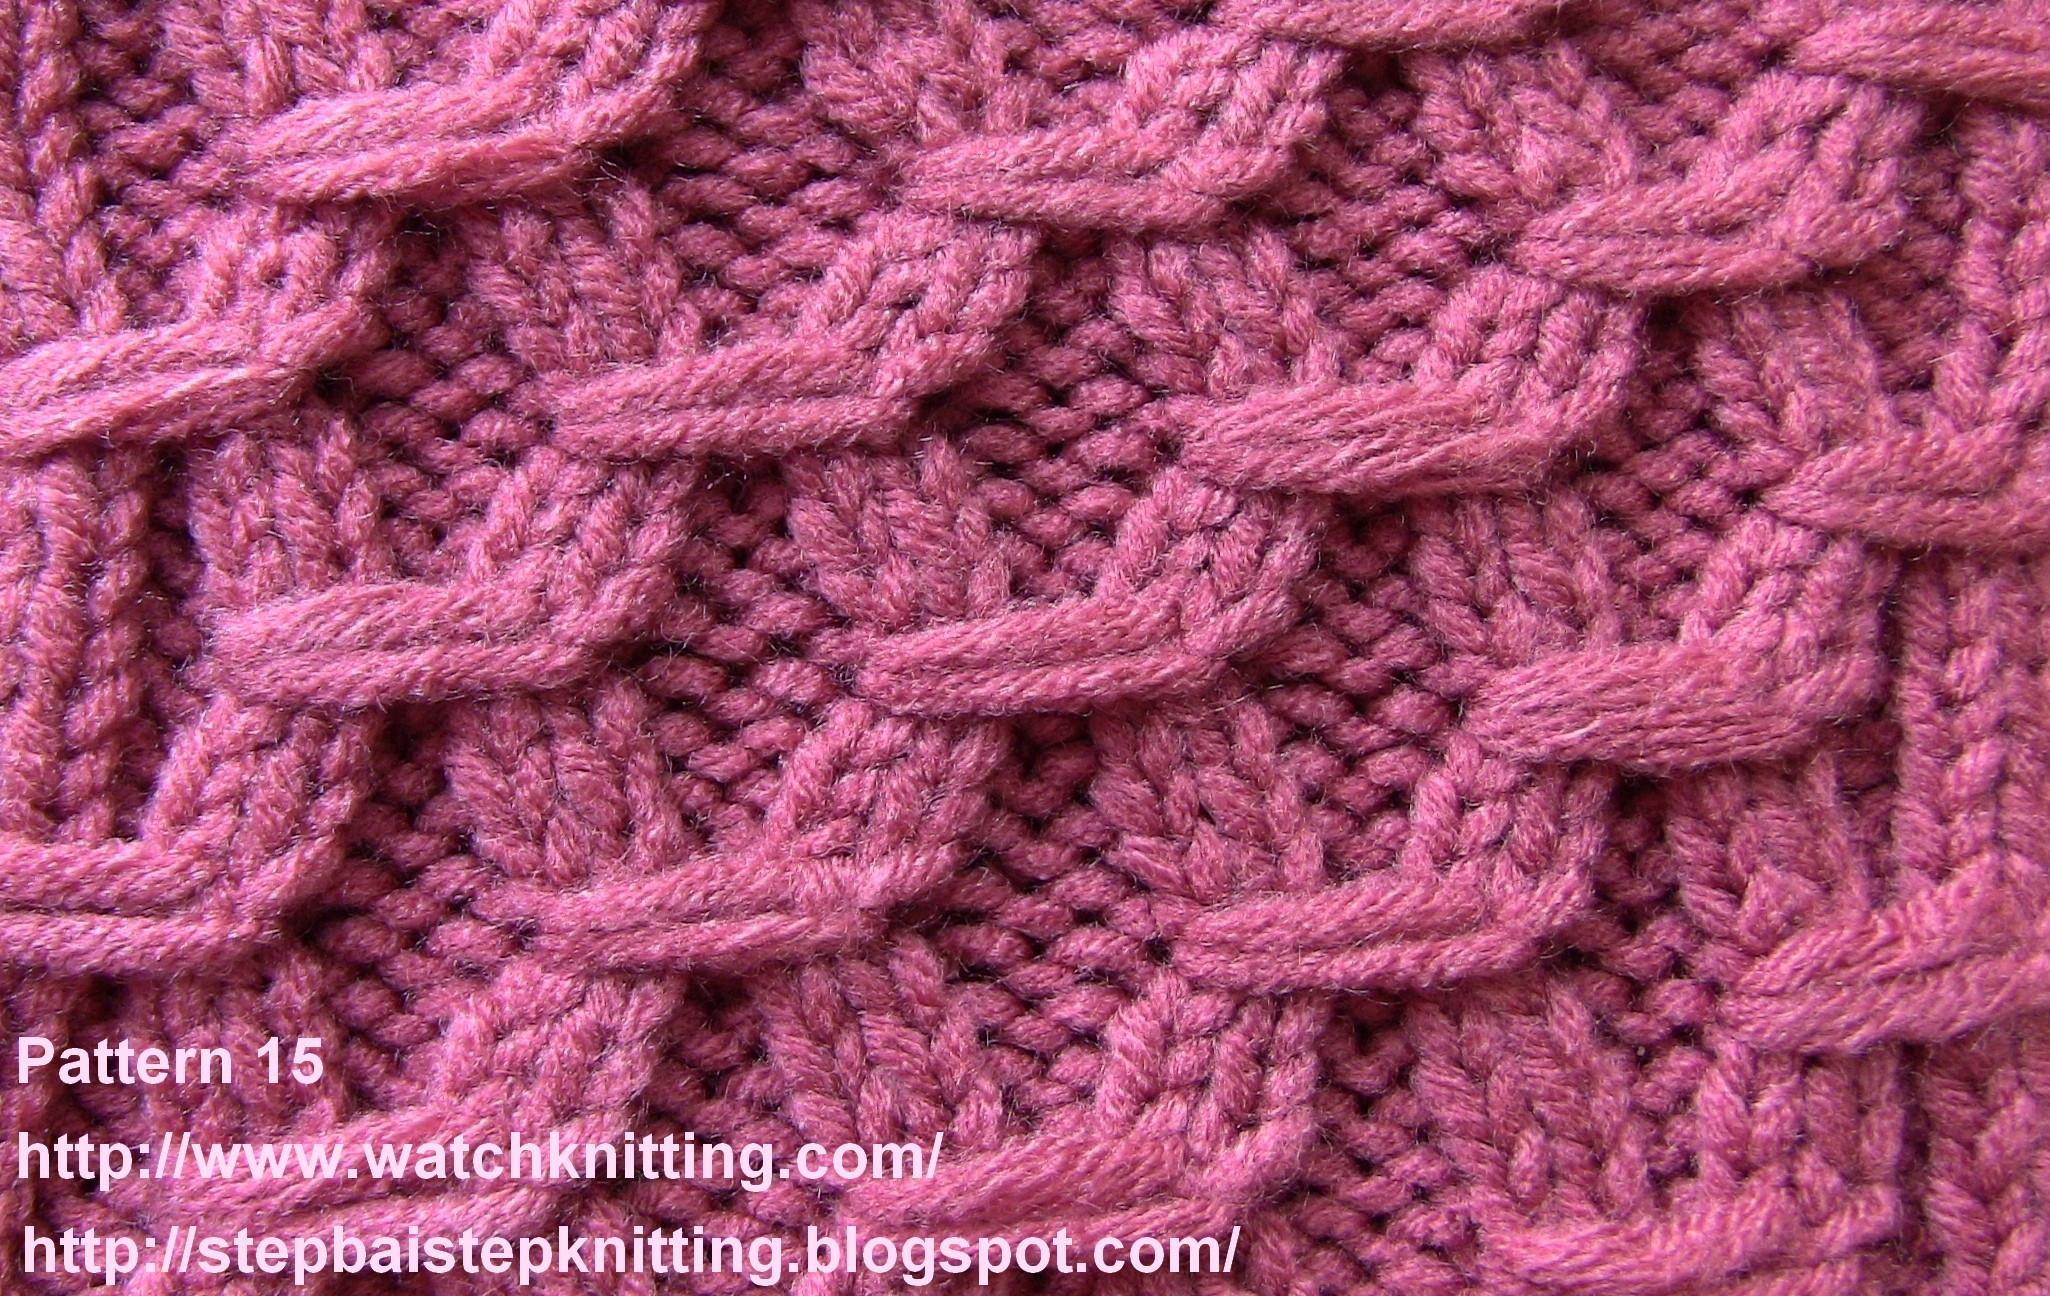 Crochet Knitting Patterns Awesome Patterns for Knitting Of Delightful 47 Ideas Crochet Knitting Patterns